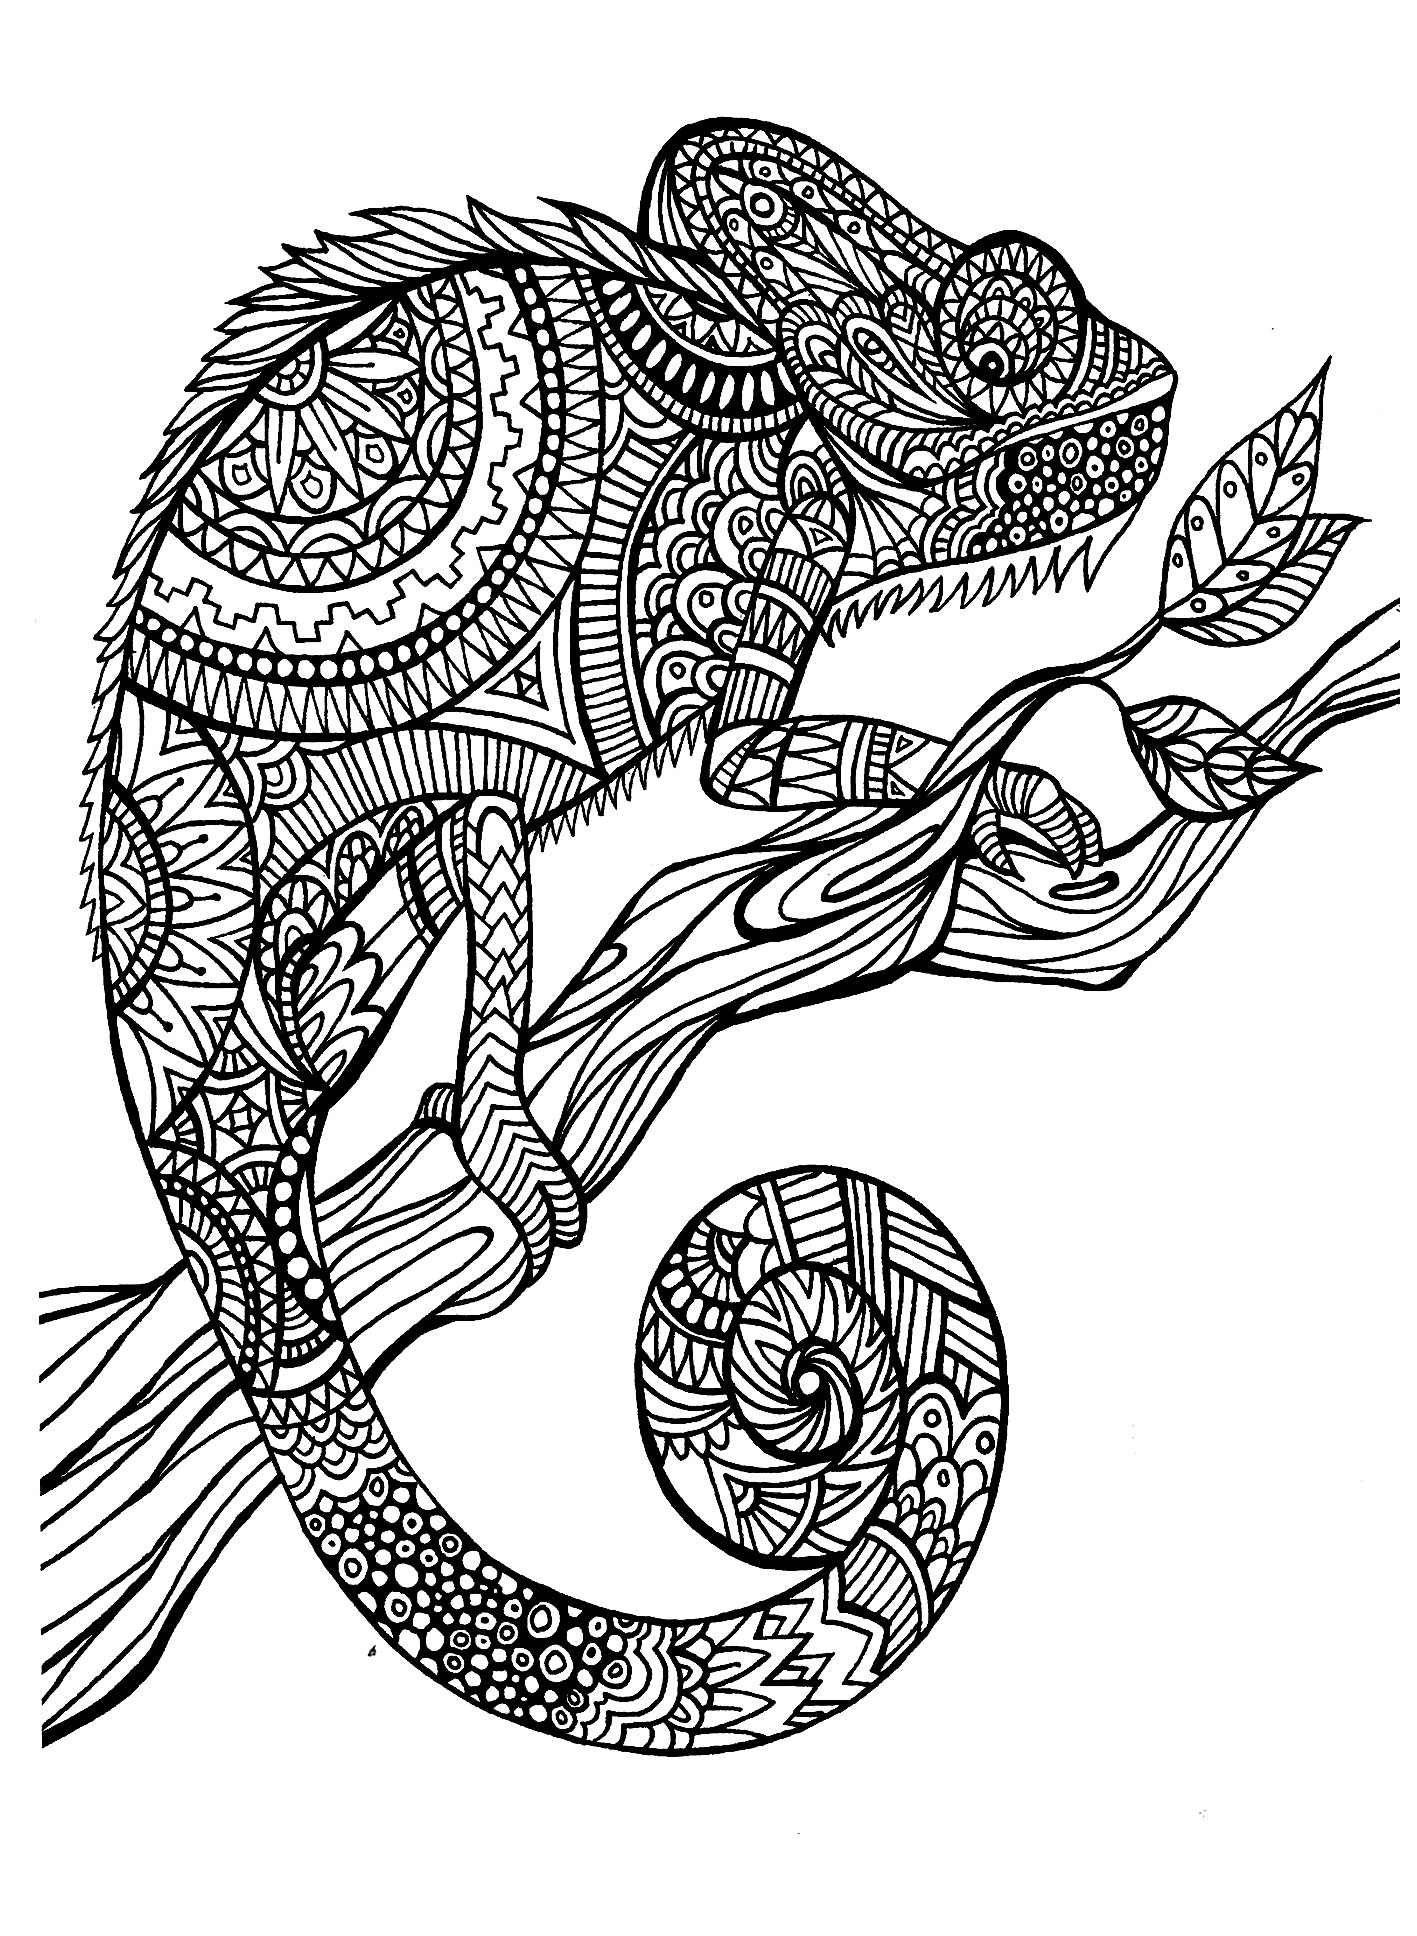 cameleon patterns animal coloring pages for kids to print u0026 color